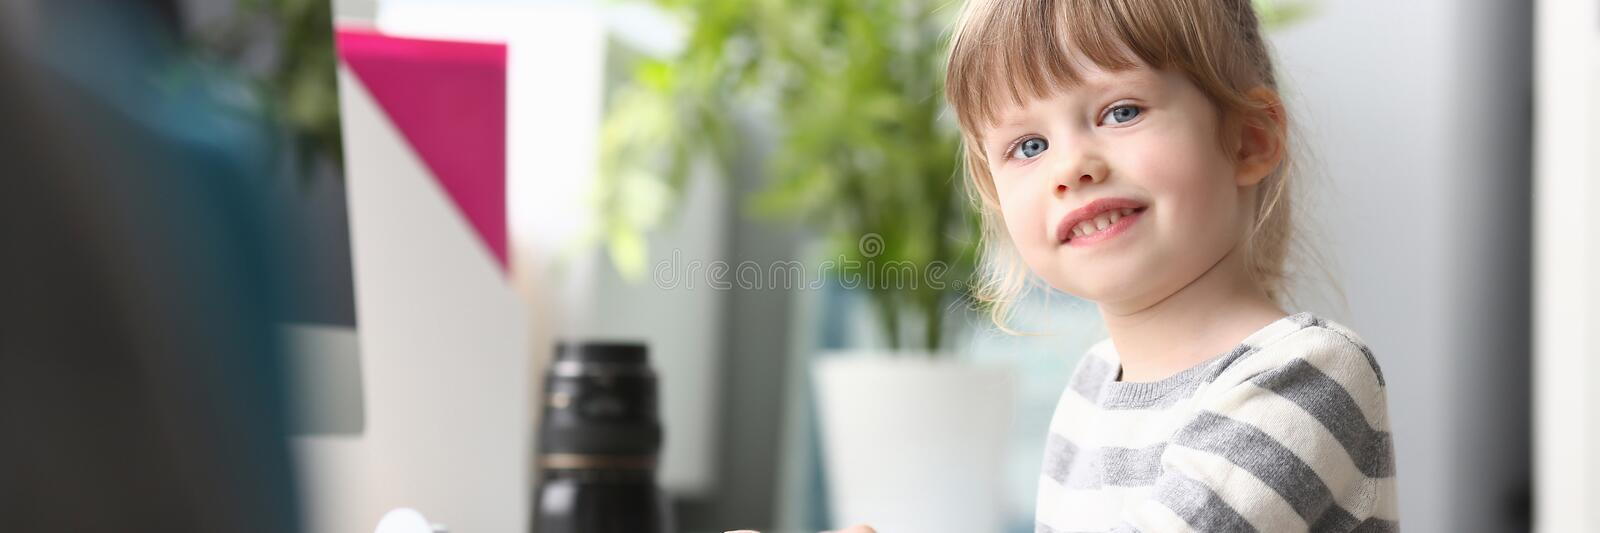 Cute little girl sitting at home at worktable looking in camera stock photography